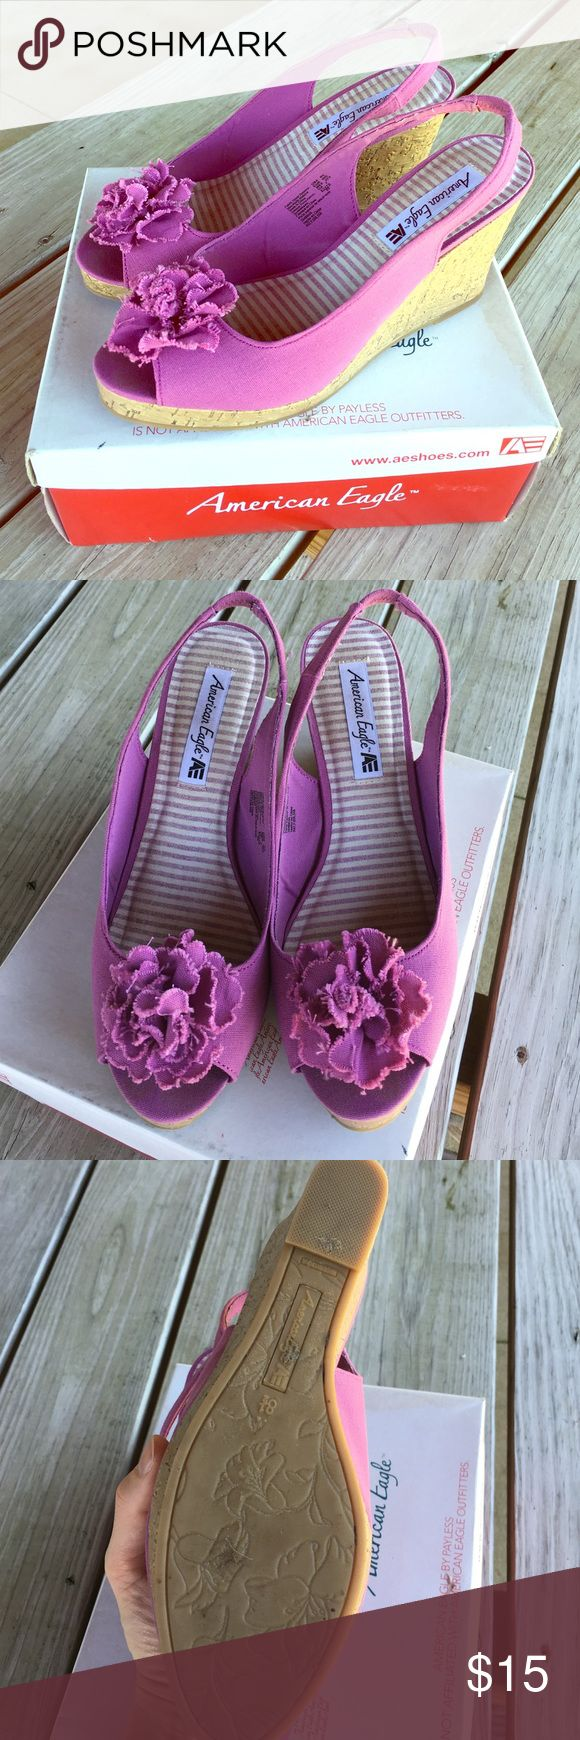 American eagle summer wedges. (Purple) Only worn once. Purple American eagle wedges. Shoes Wedges